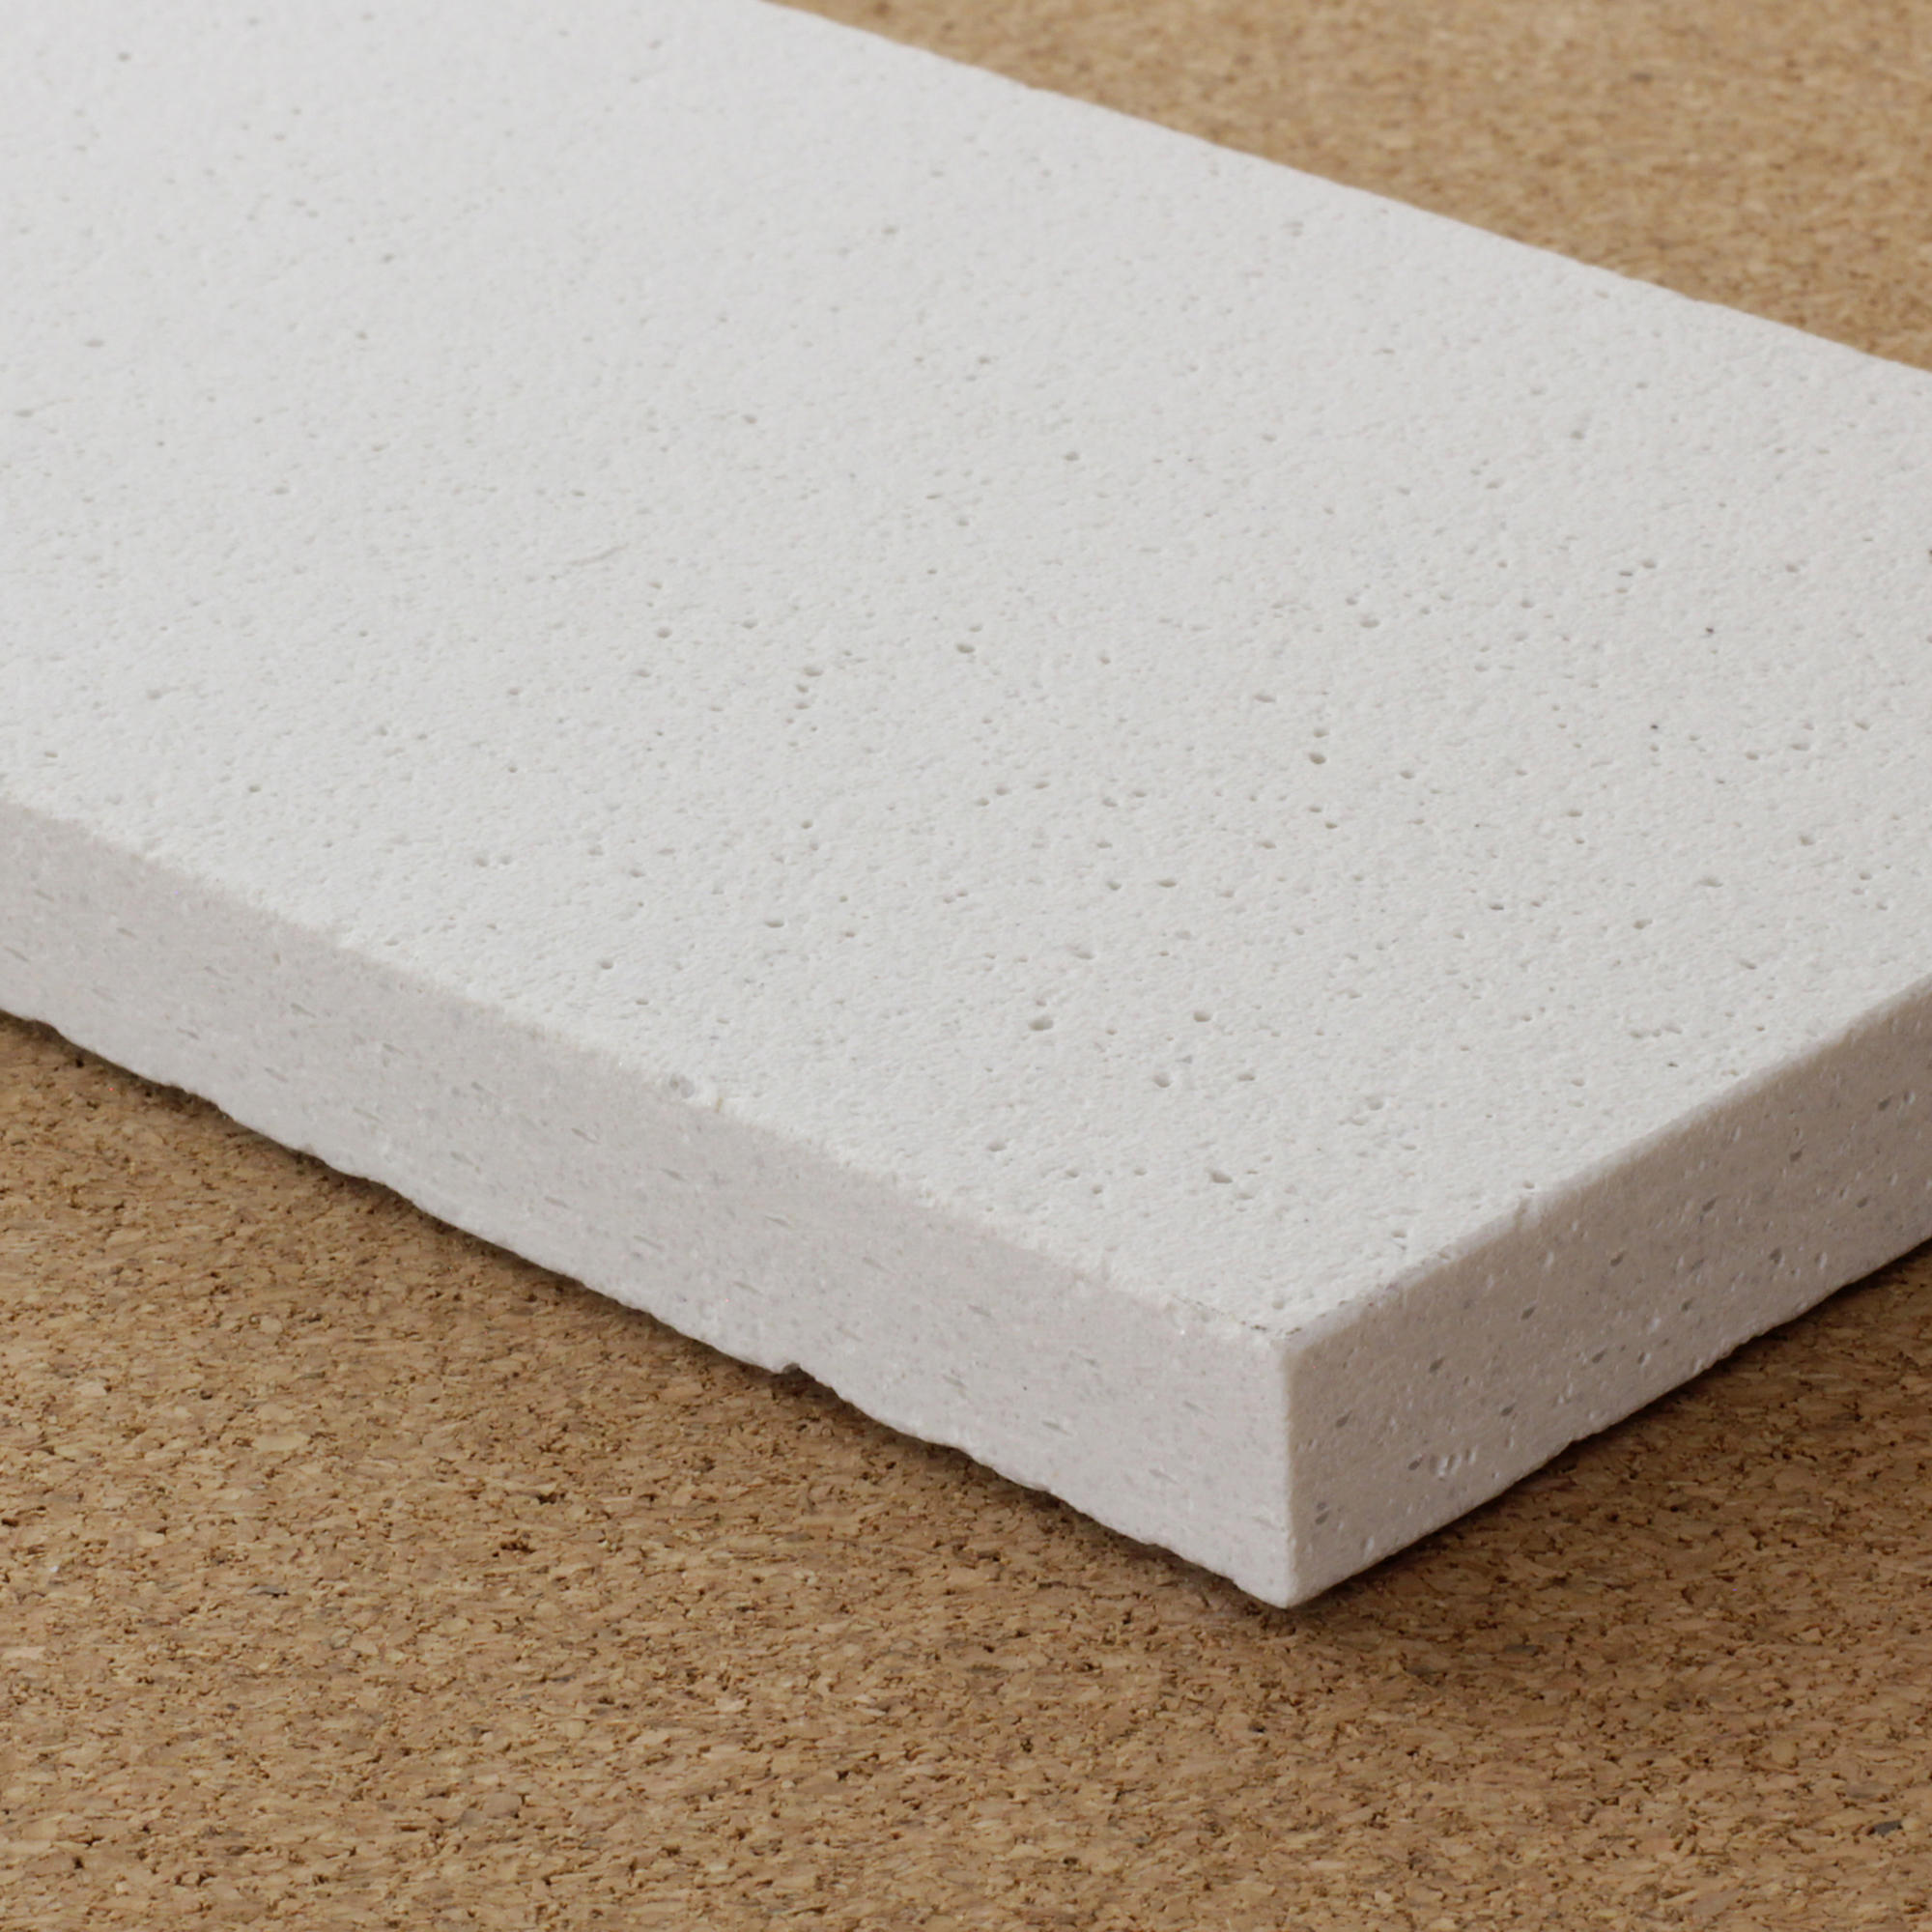 Fiber Reinforced Concrete : Extruded glass fibre reinforced concrete sandblasted